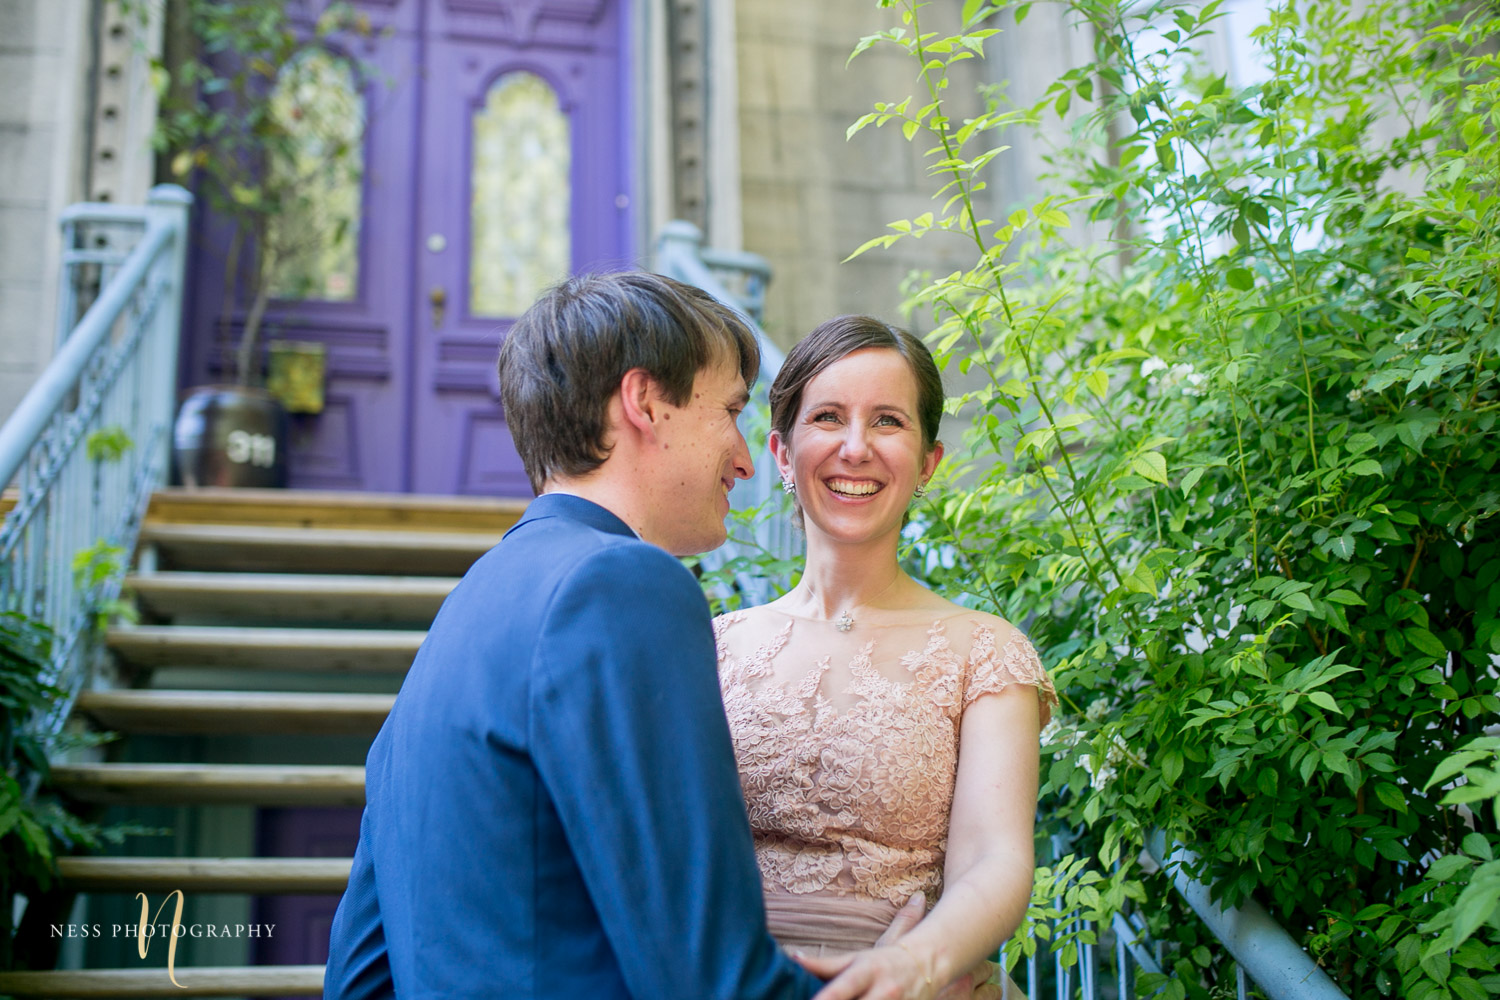 bride and groom laughing in front of purpule house in square saint louis